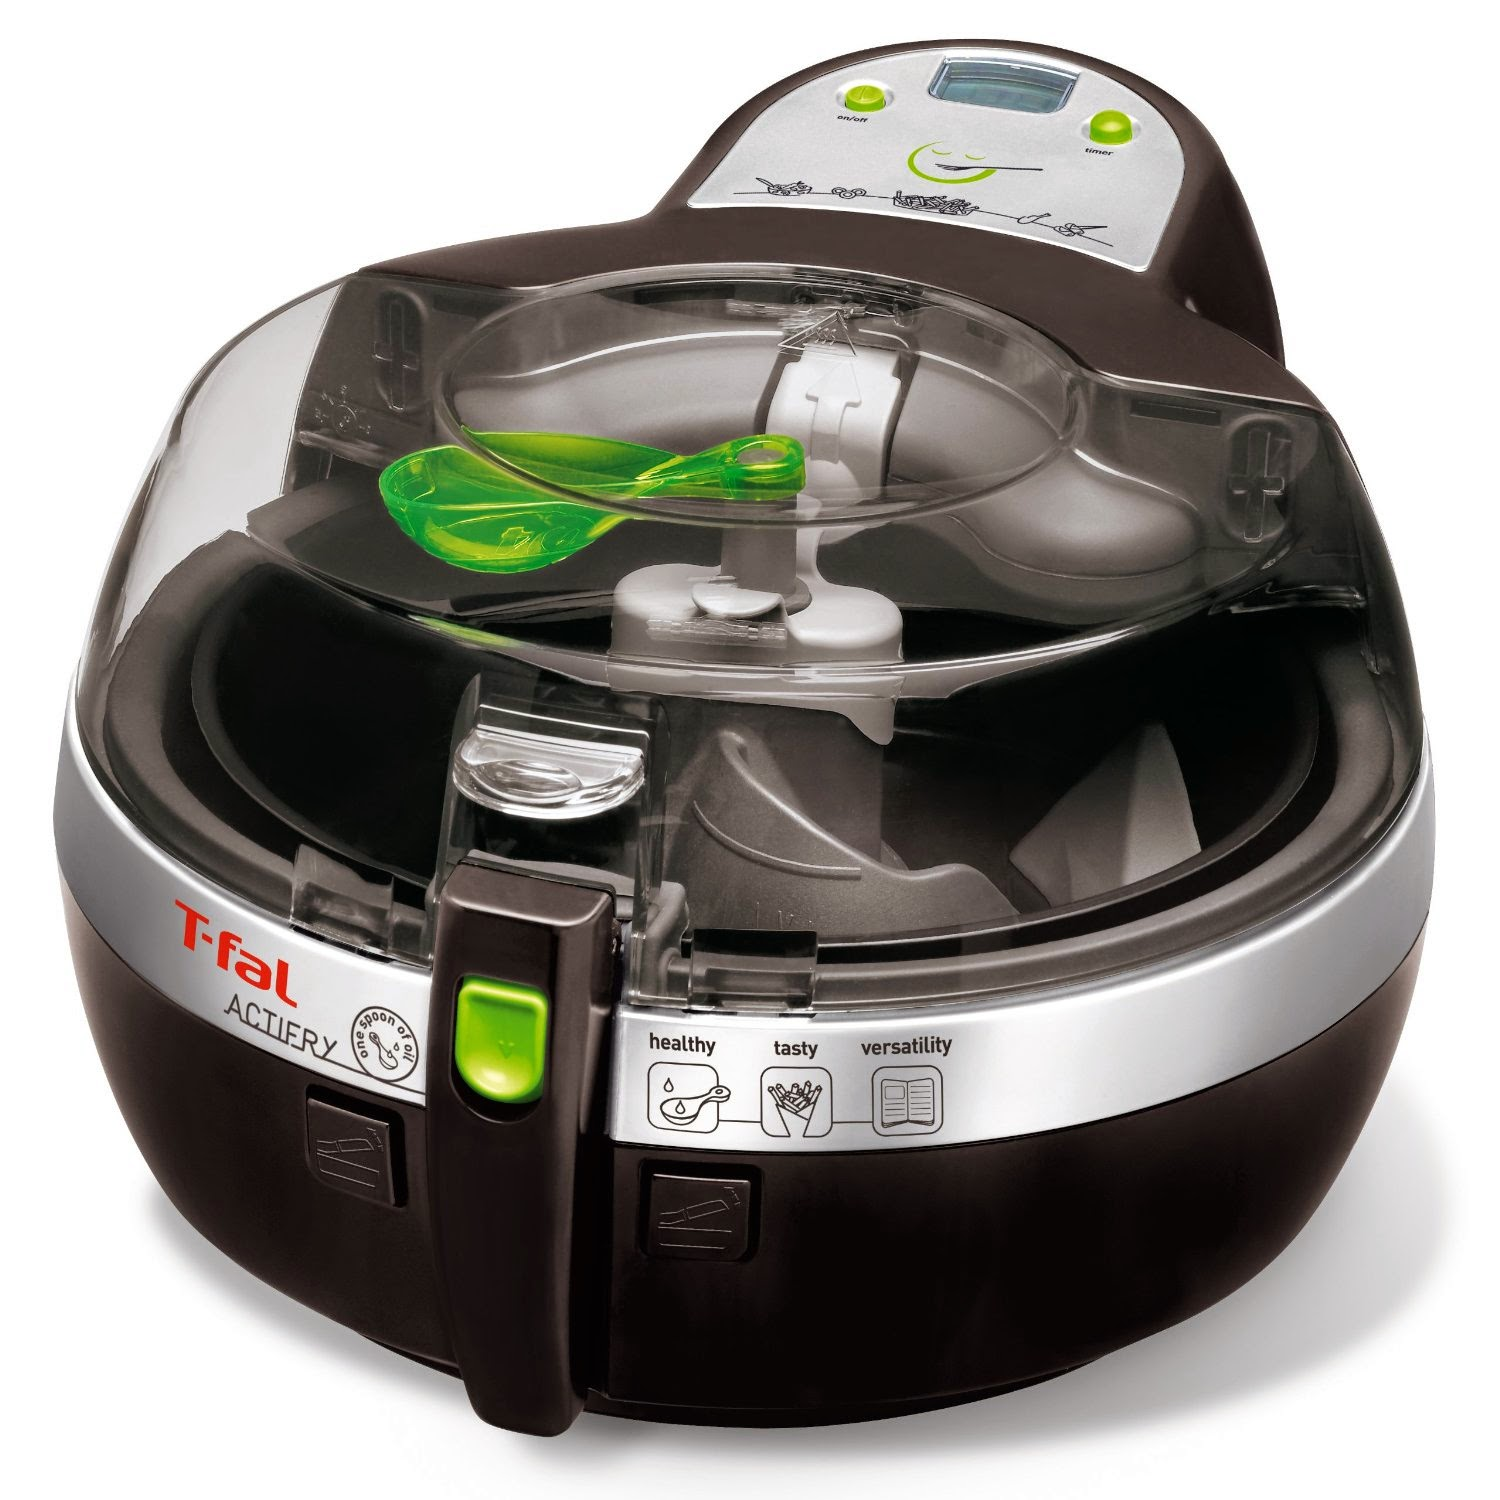 T-fal FZ700251 ActiFry Low-Fat Healthy Multi-Cooker, review, uses little or no oil to cook meals, simple & easy to use and clean